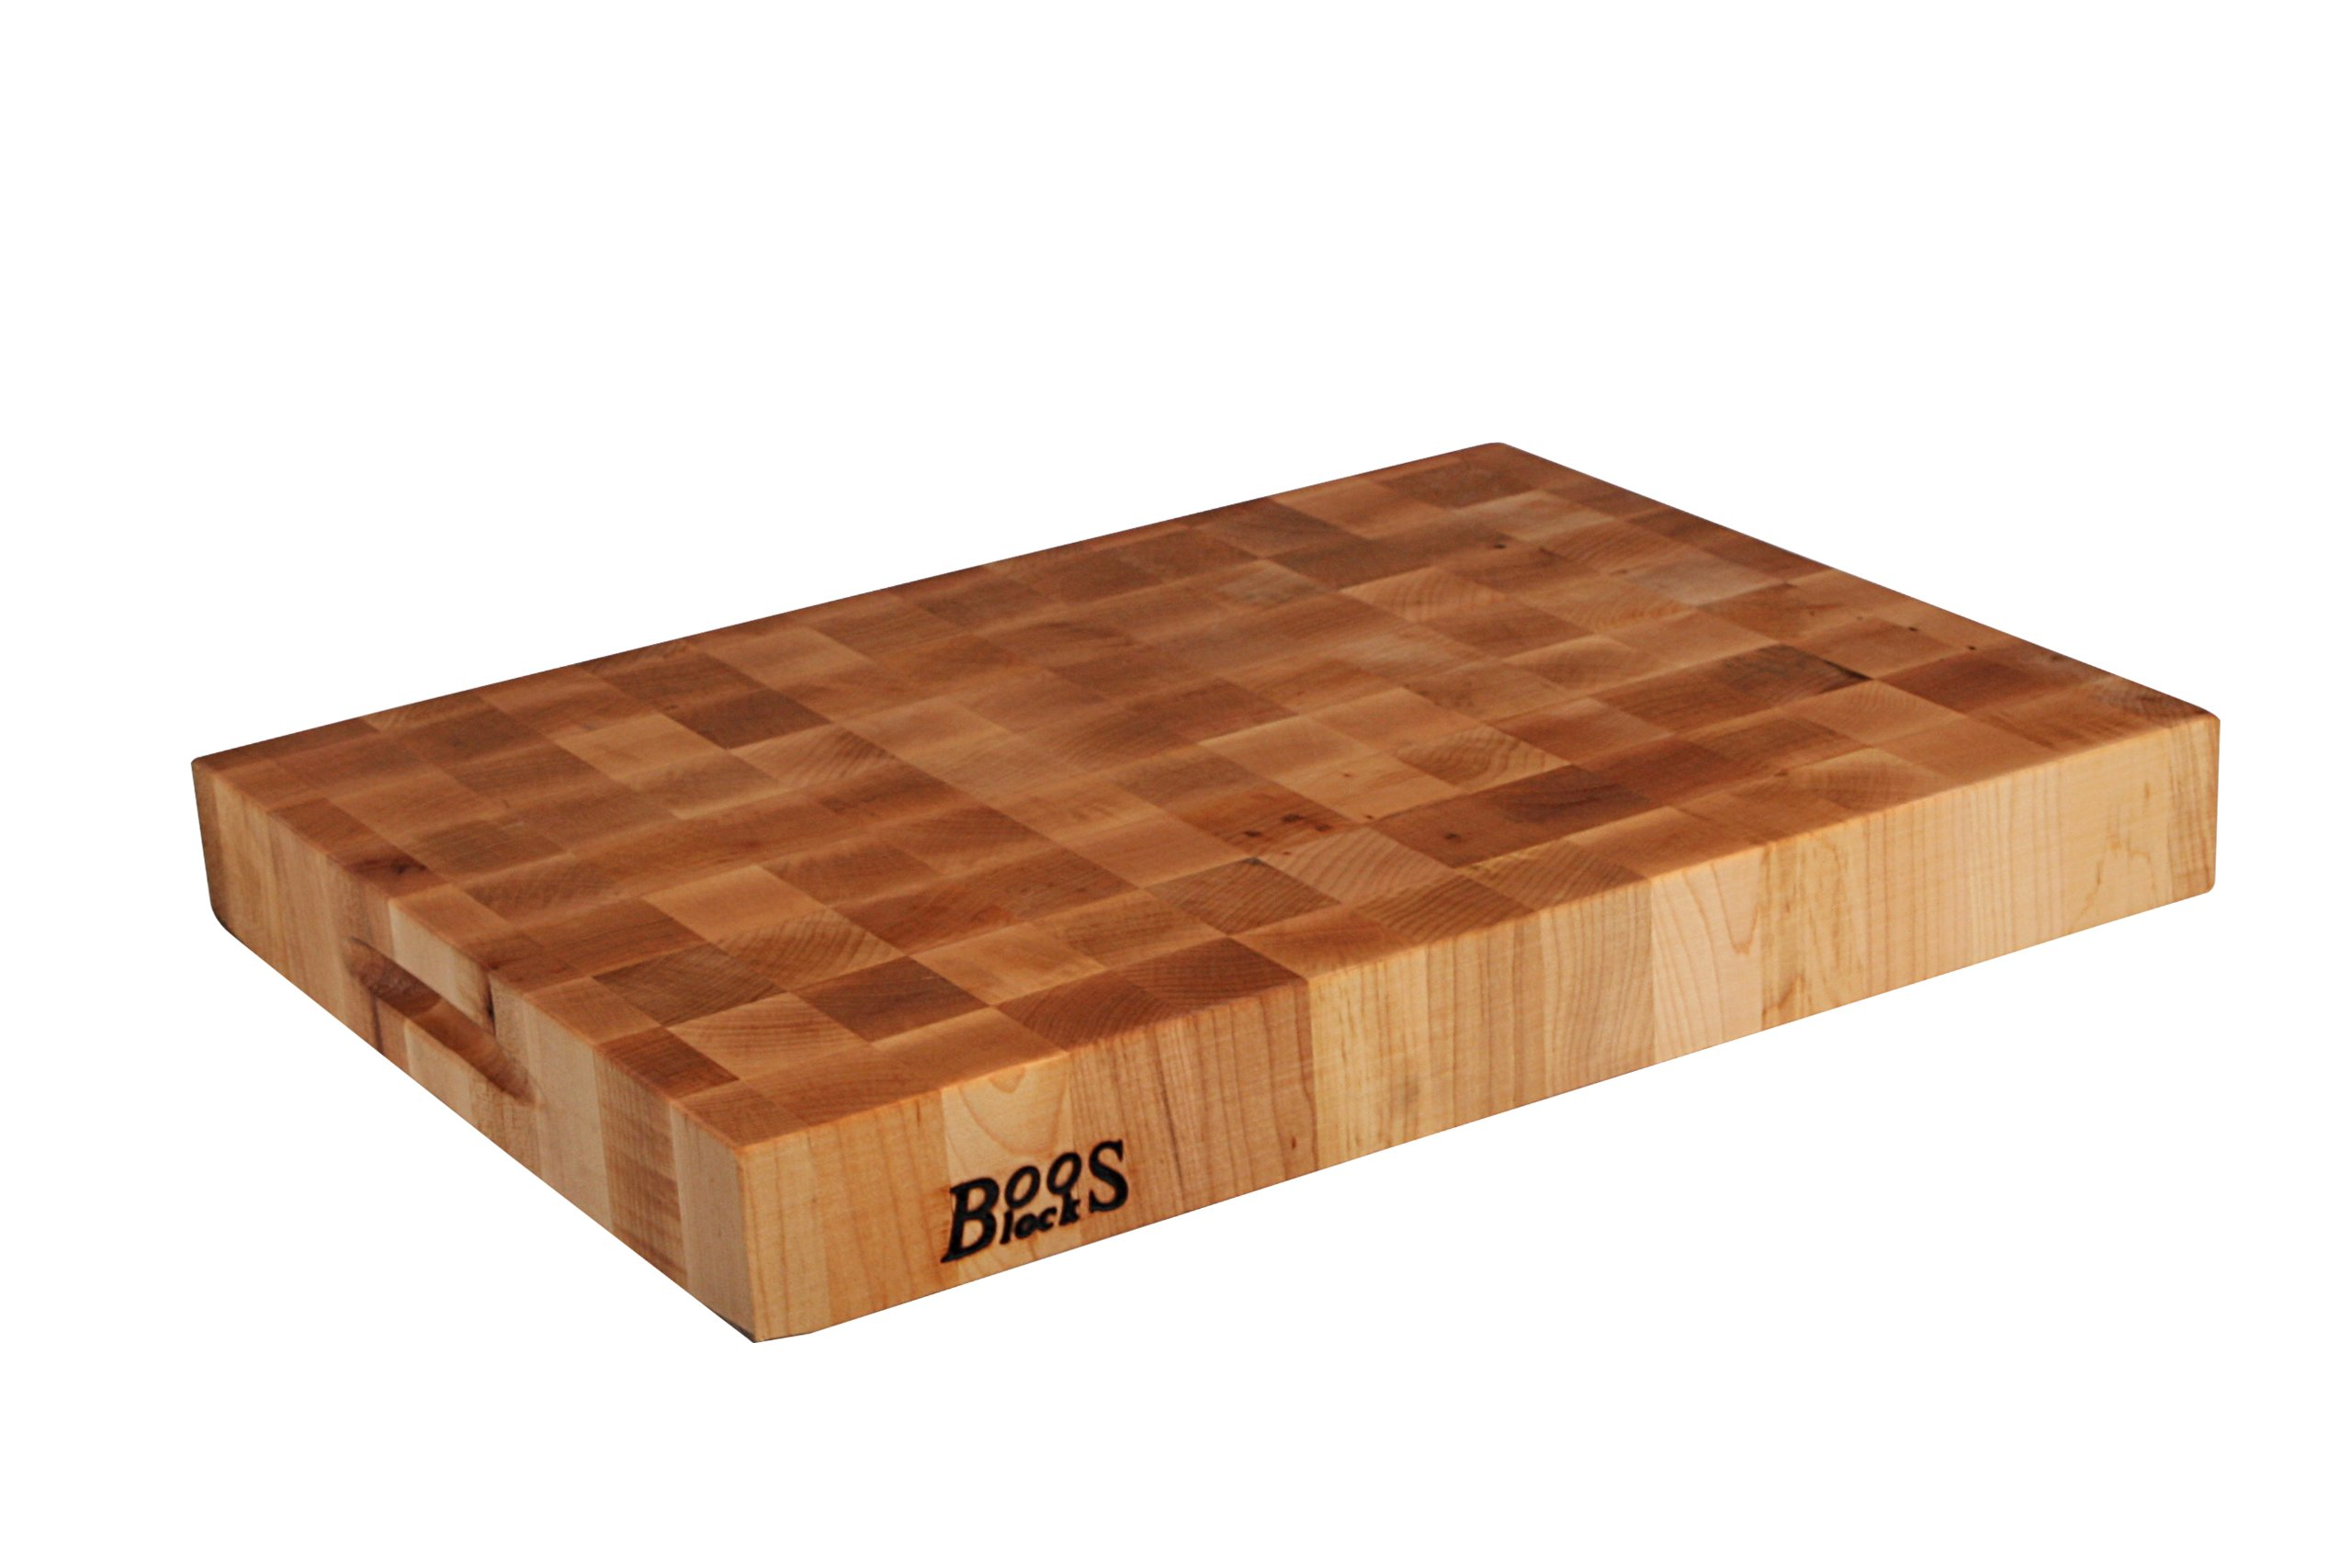 John Boos Maple Wood End Grain Reversible Butcher Block Cutting Board, 20''x 15'' x 2.25 Inches